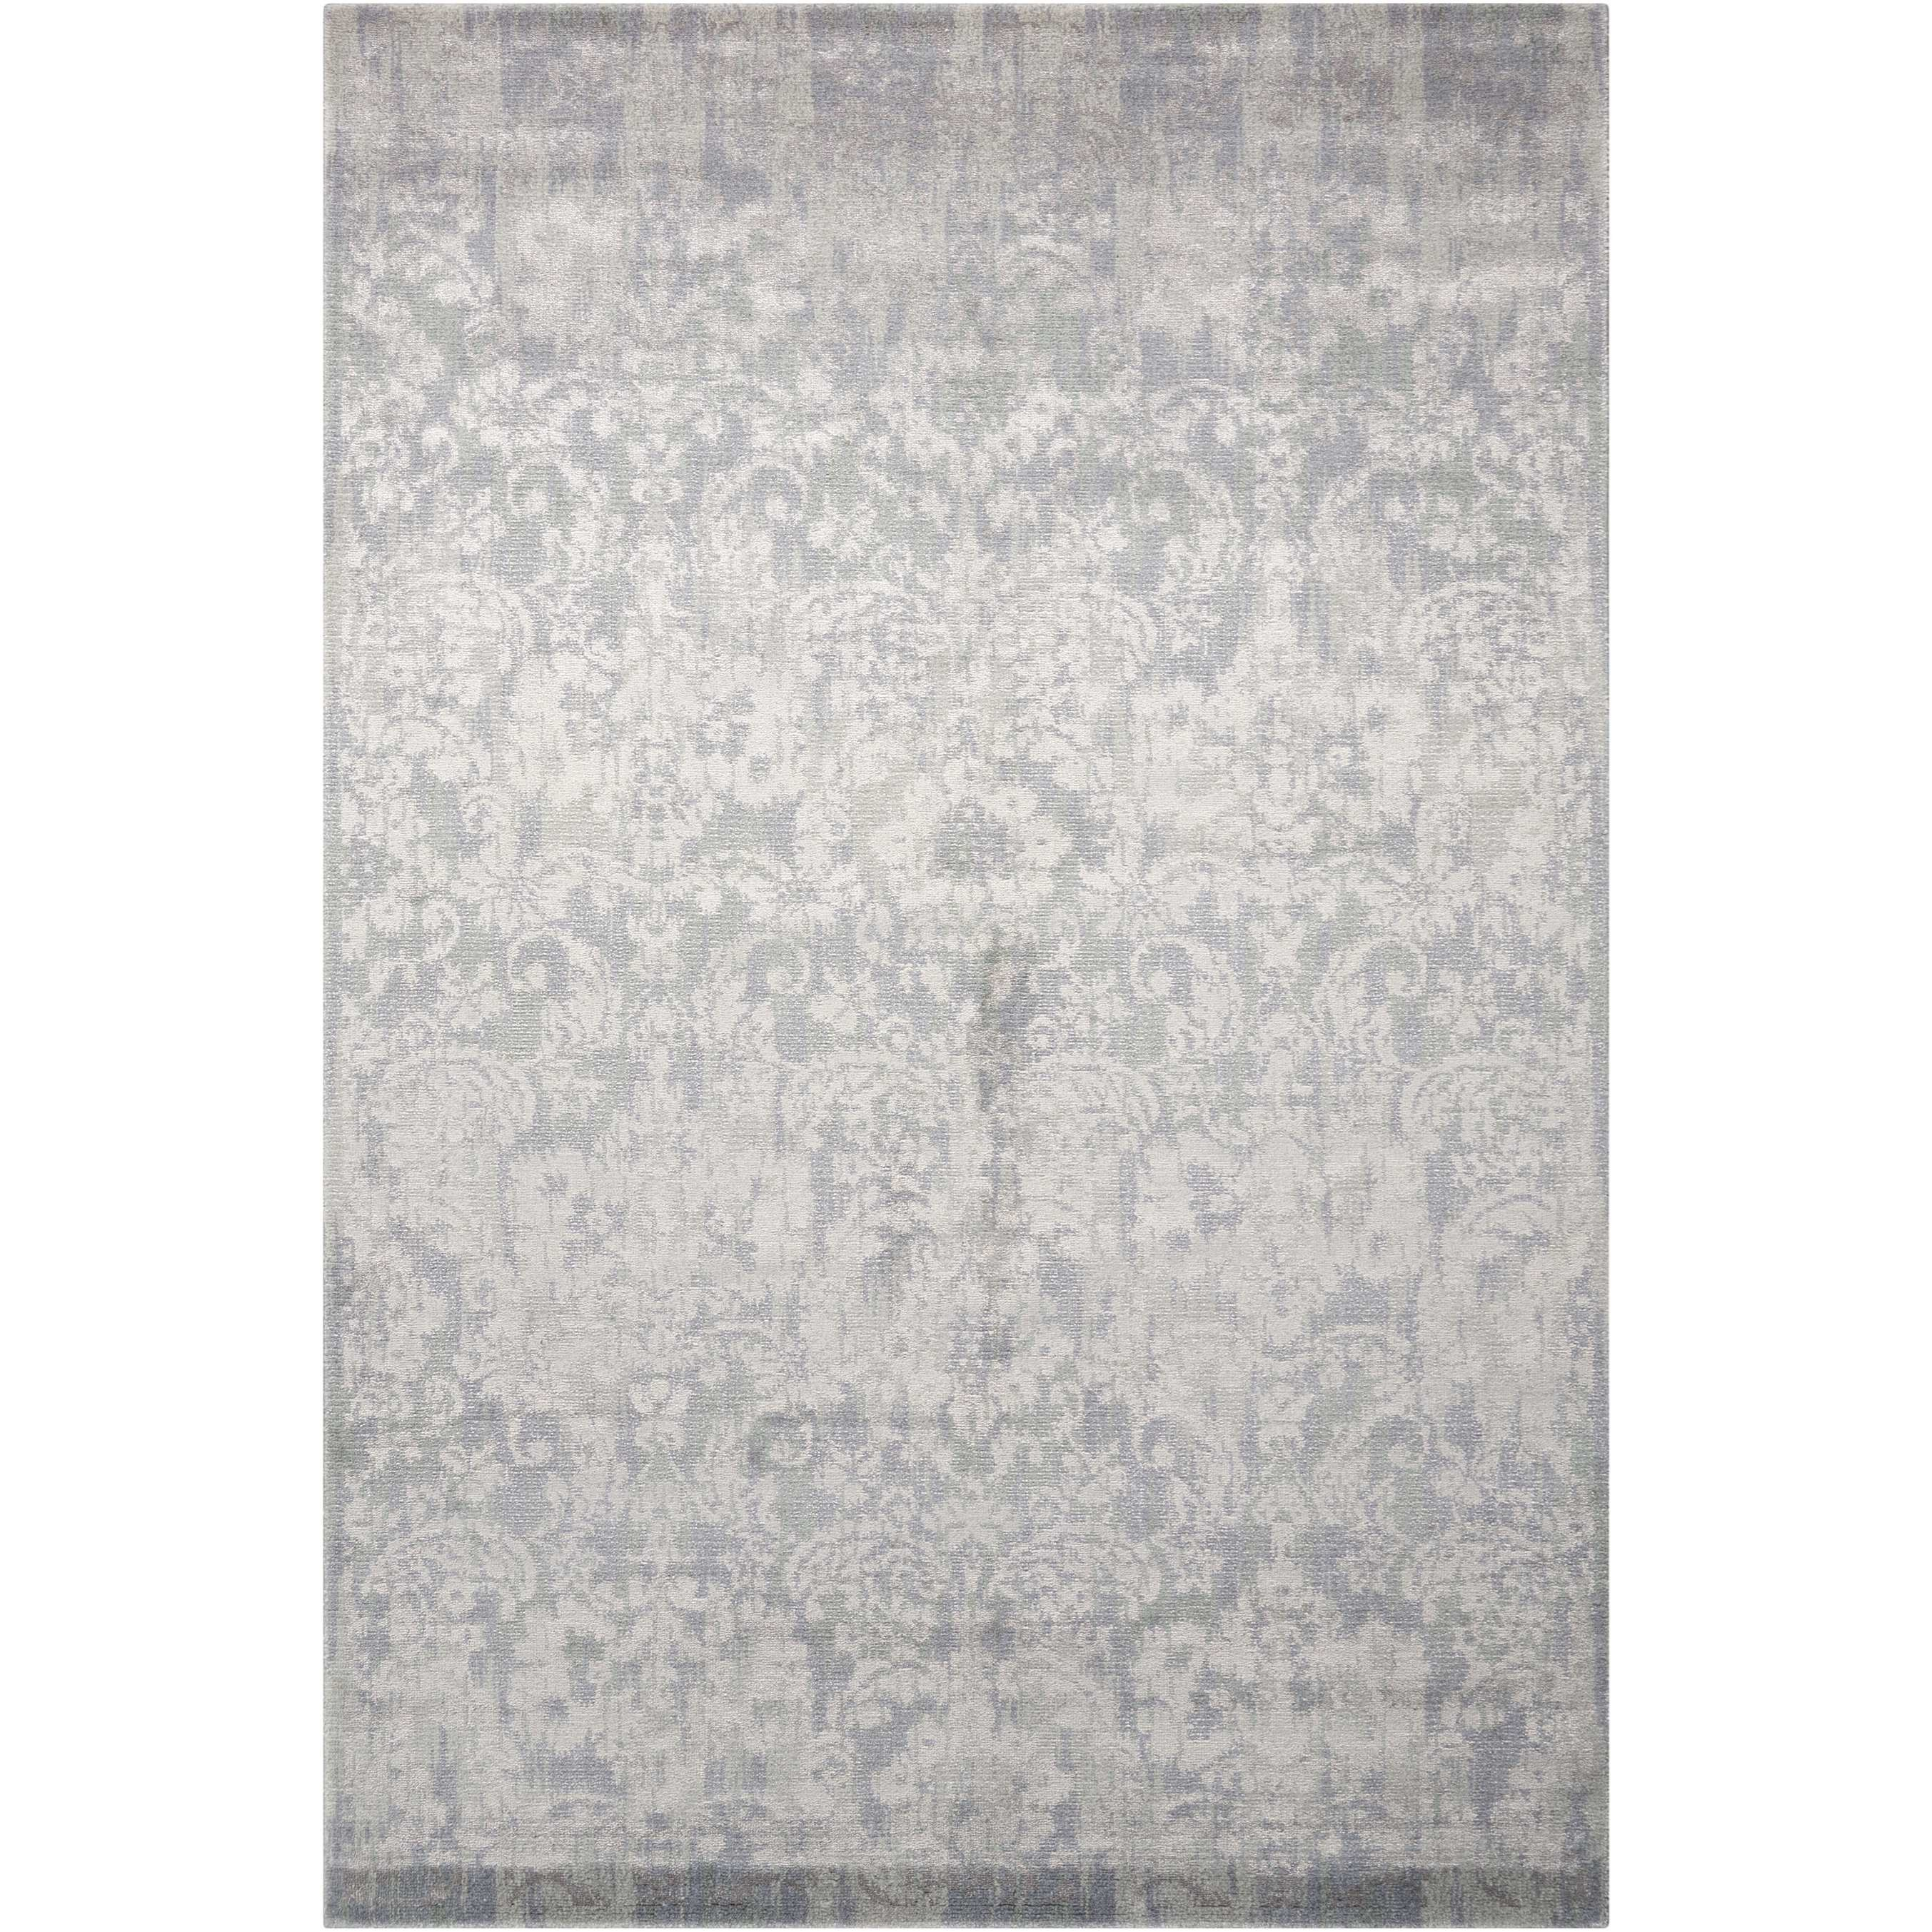 """Twilight1 9'9"""" X 13'9"""" Slate Rug by Nourison at Home Collections Furniture"""